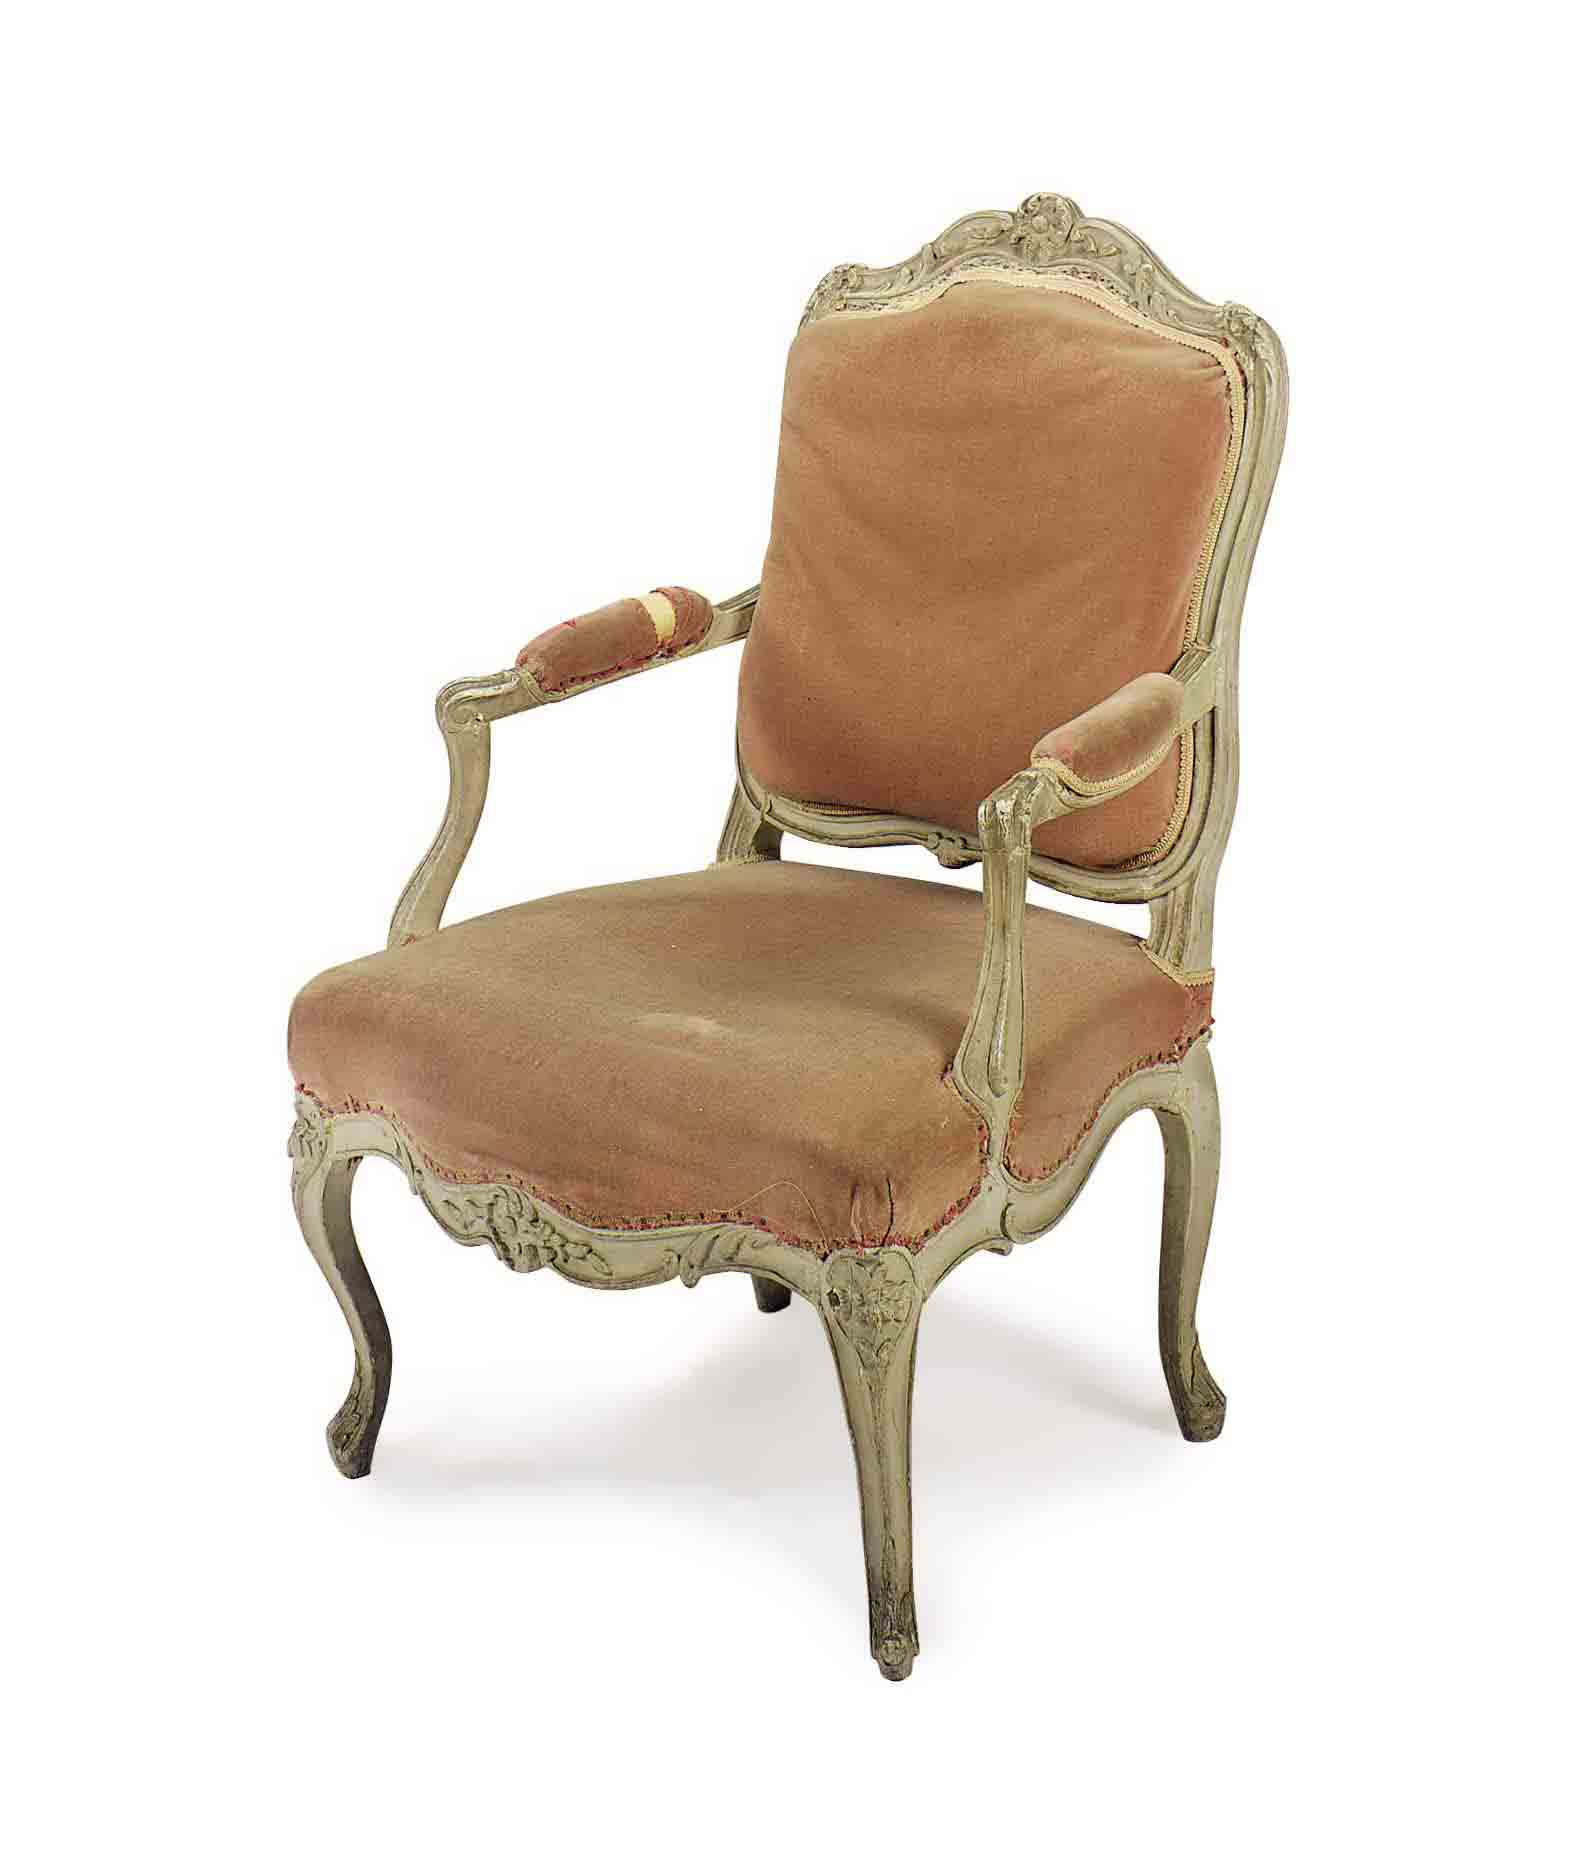 A LOUIS XV GREY-PAINTED FAUTEUIL,